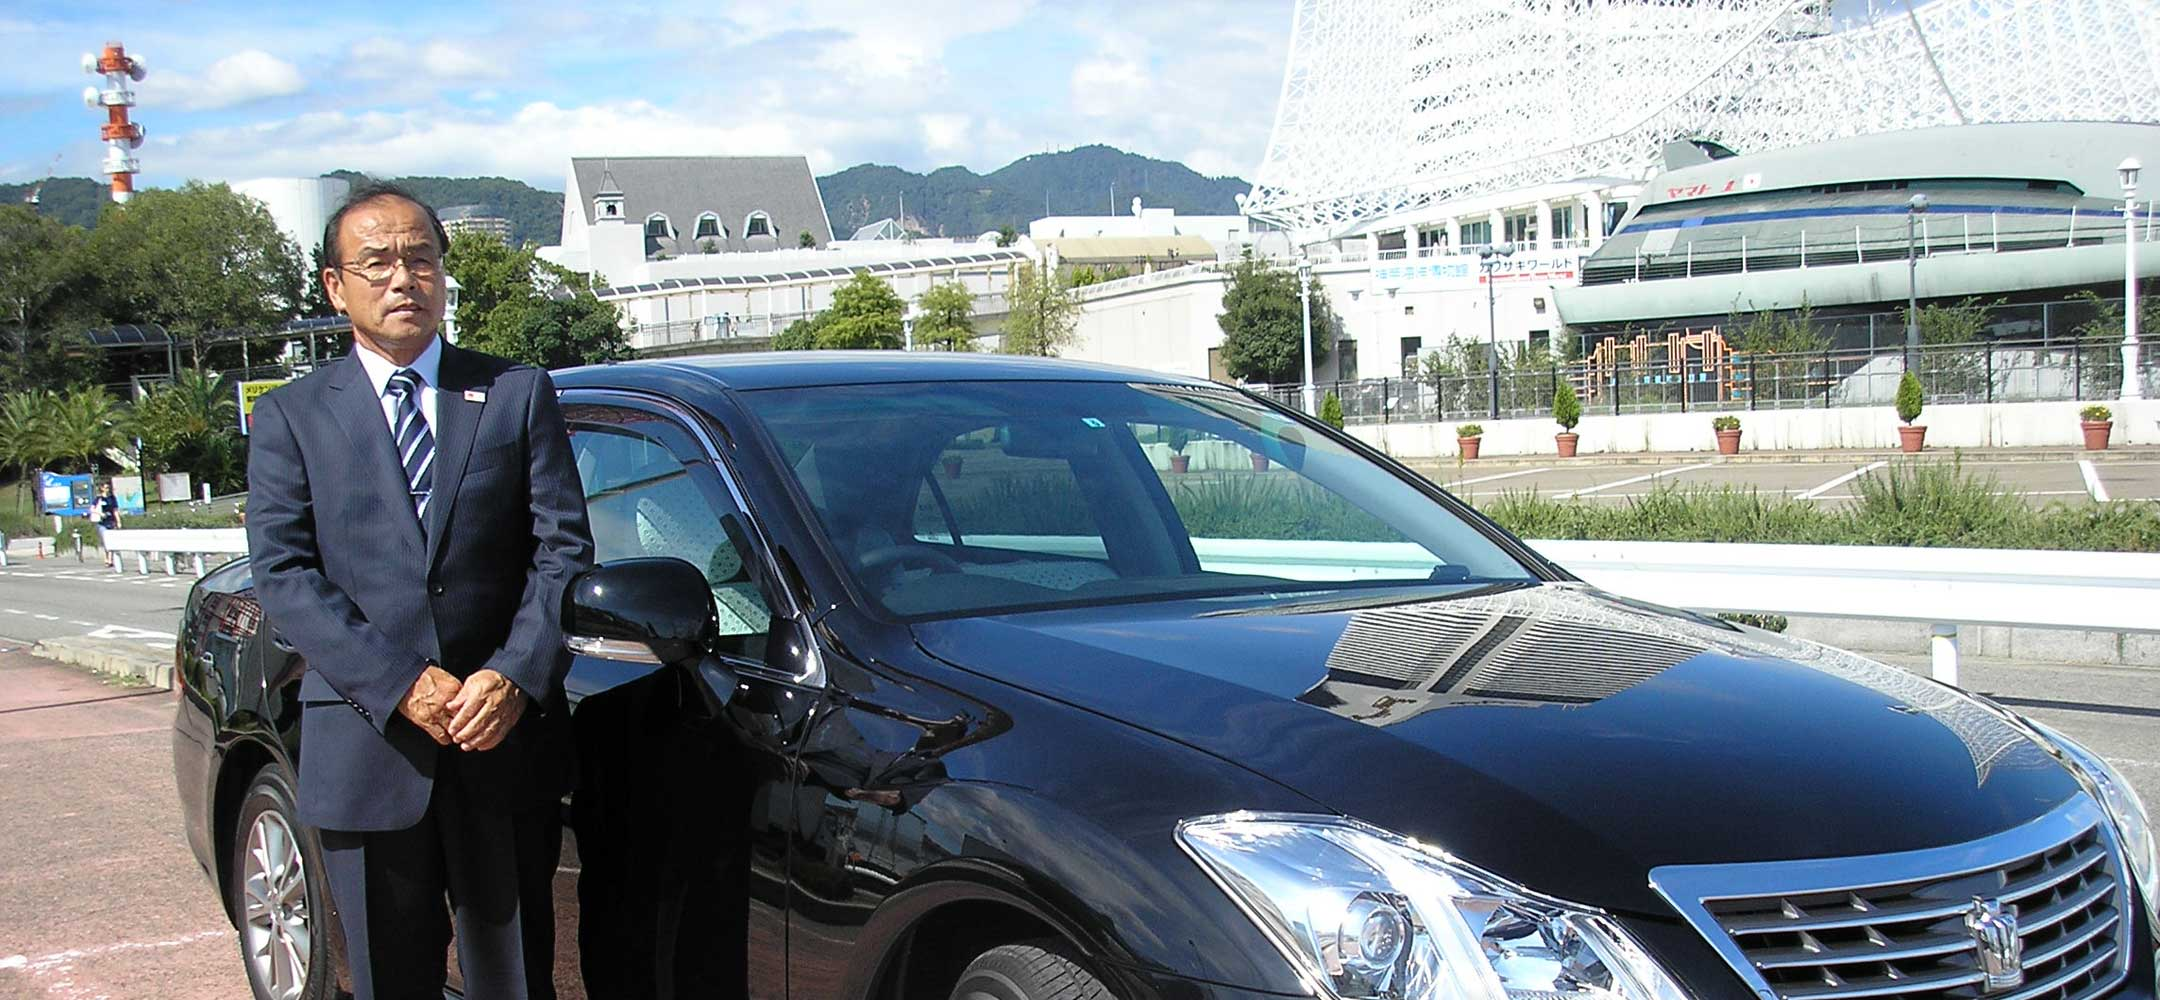 Full day private guide and driver service in Tokyo